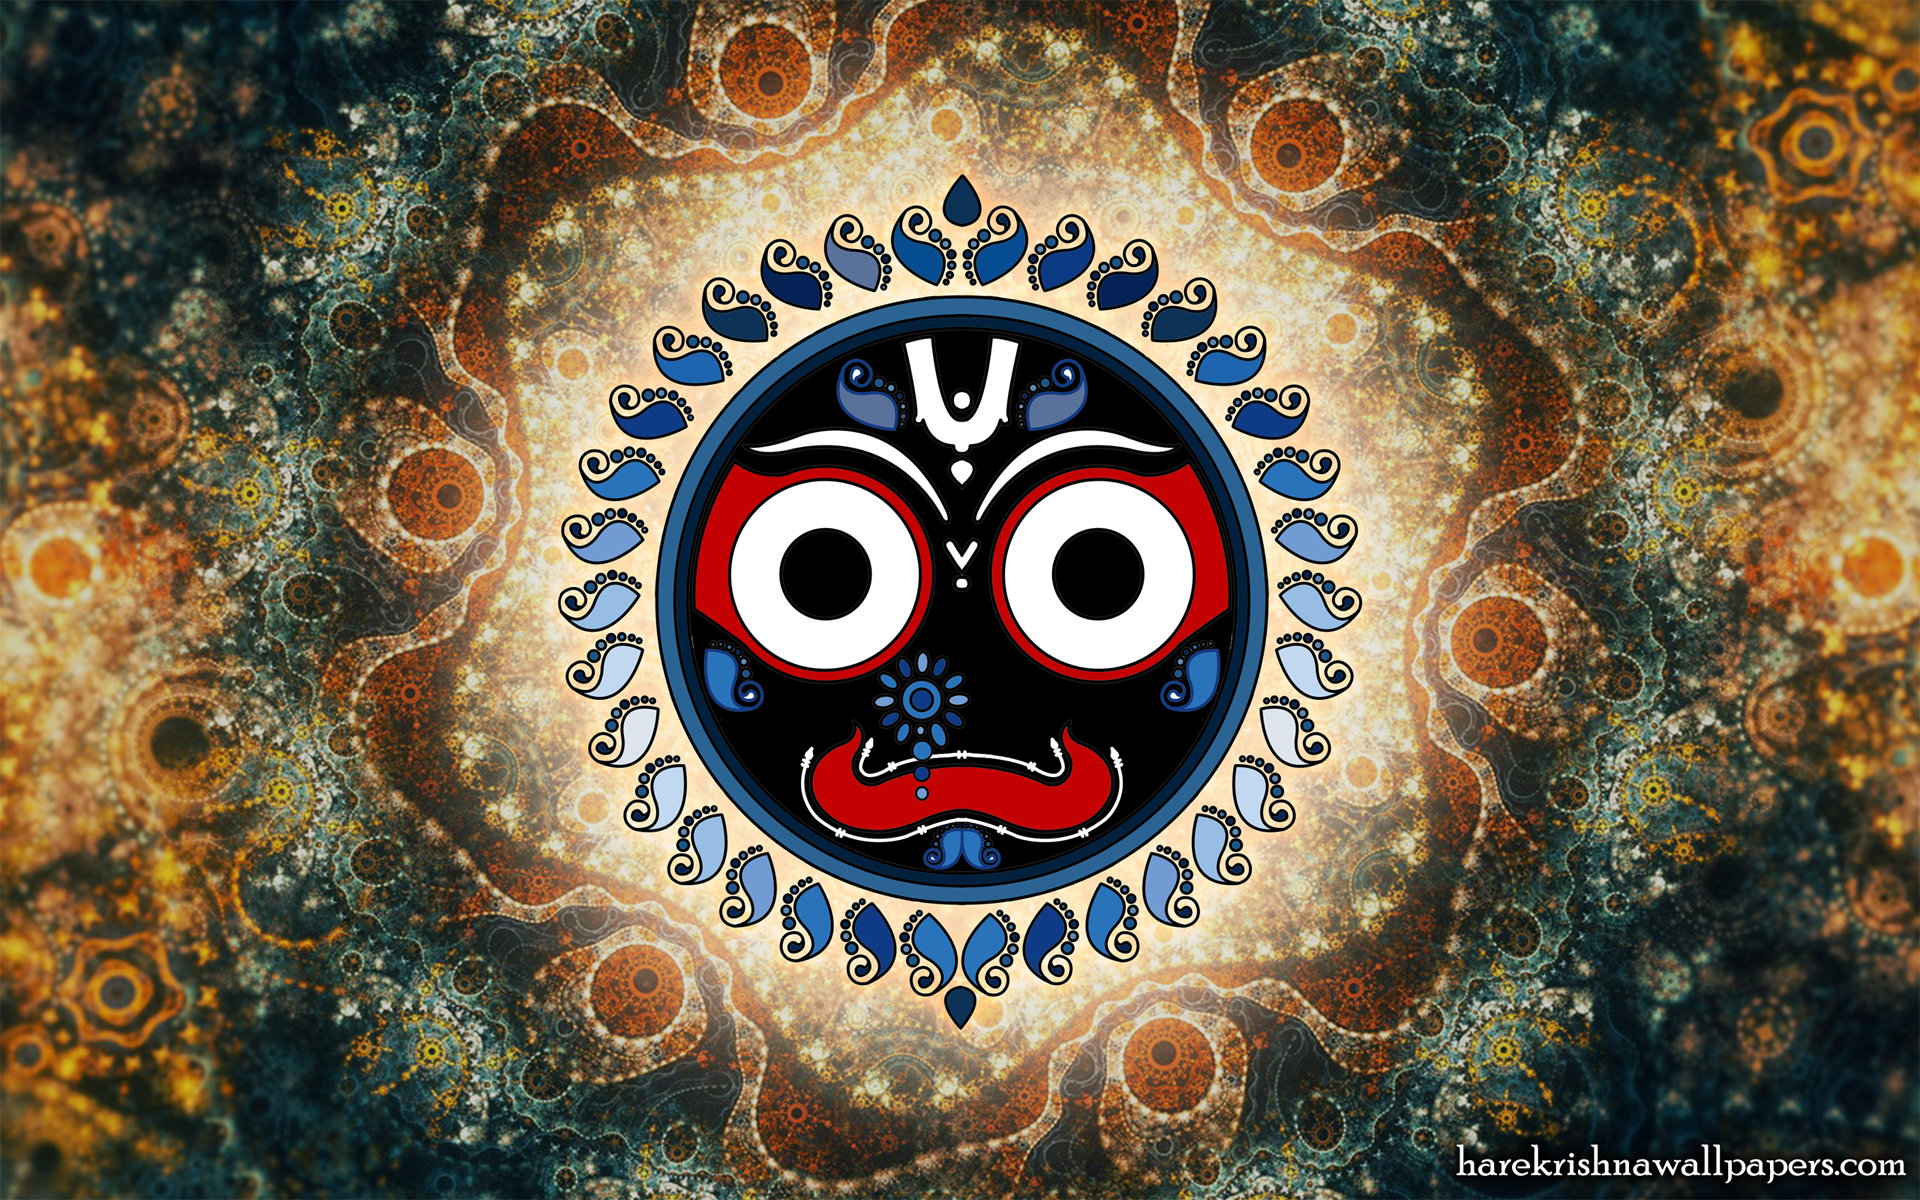 Jai Jagannath Ji Wallpapers for free download